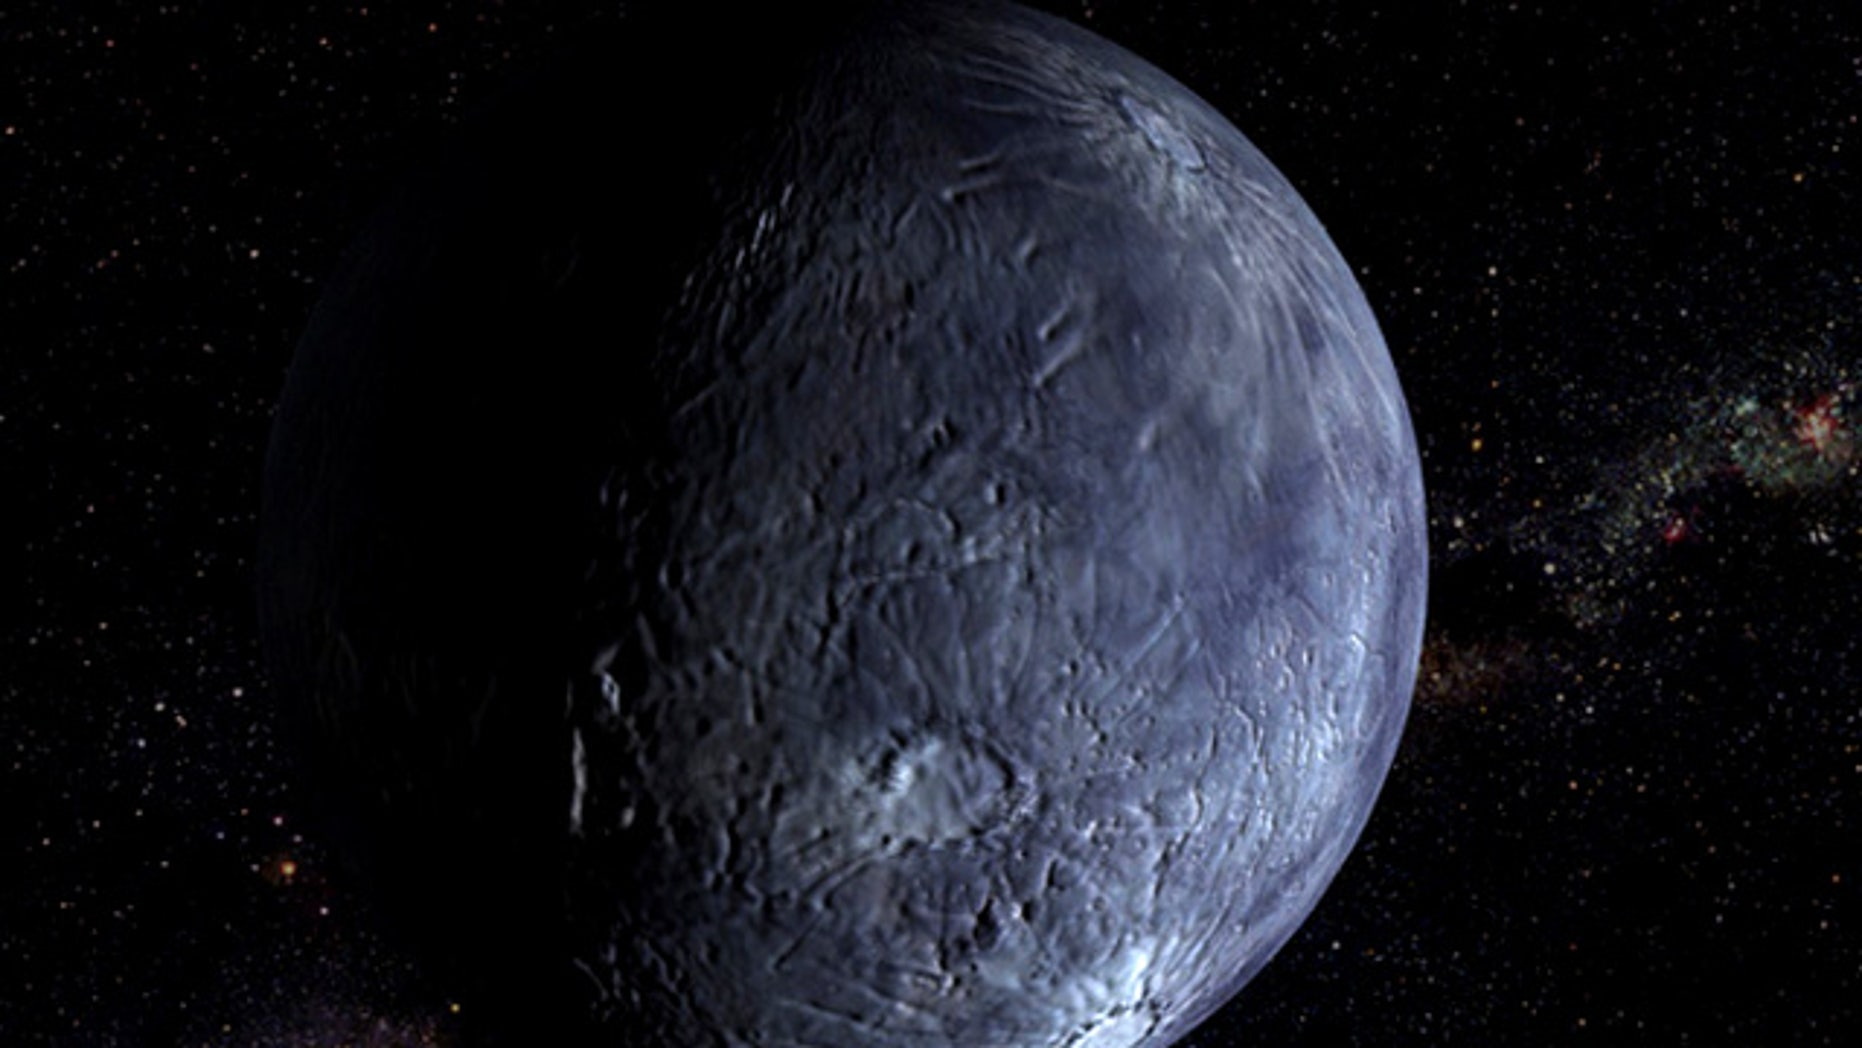 An illustration of Quaoar, another mystery of the outer solar system.